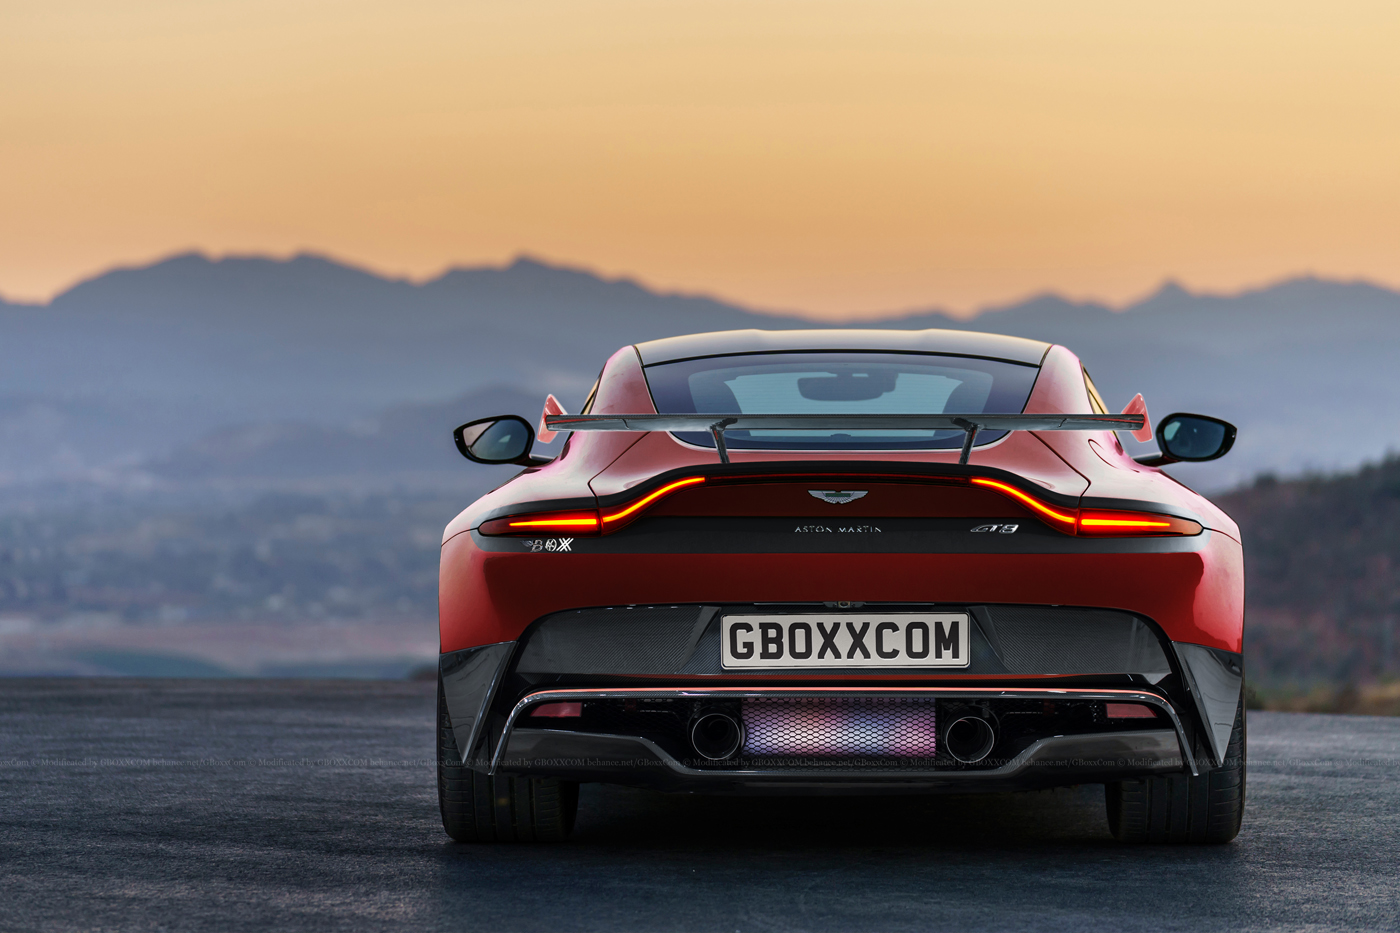 Aston Martin Gt8 >> New Aston Martin Vantage Dreamed Up In GT8 Guise - Types cars